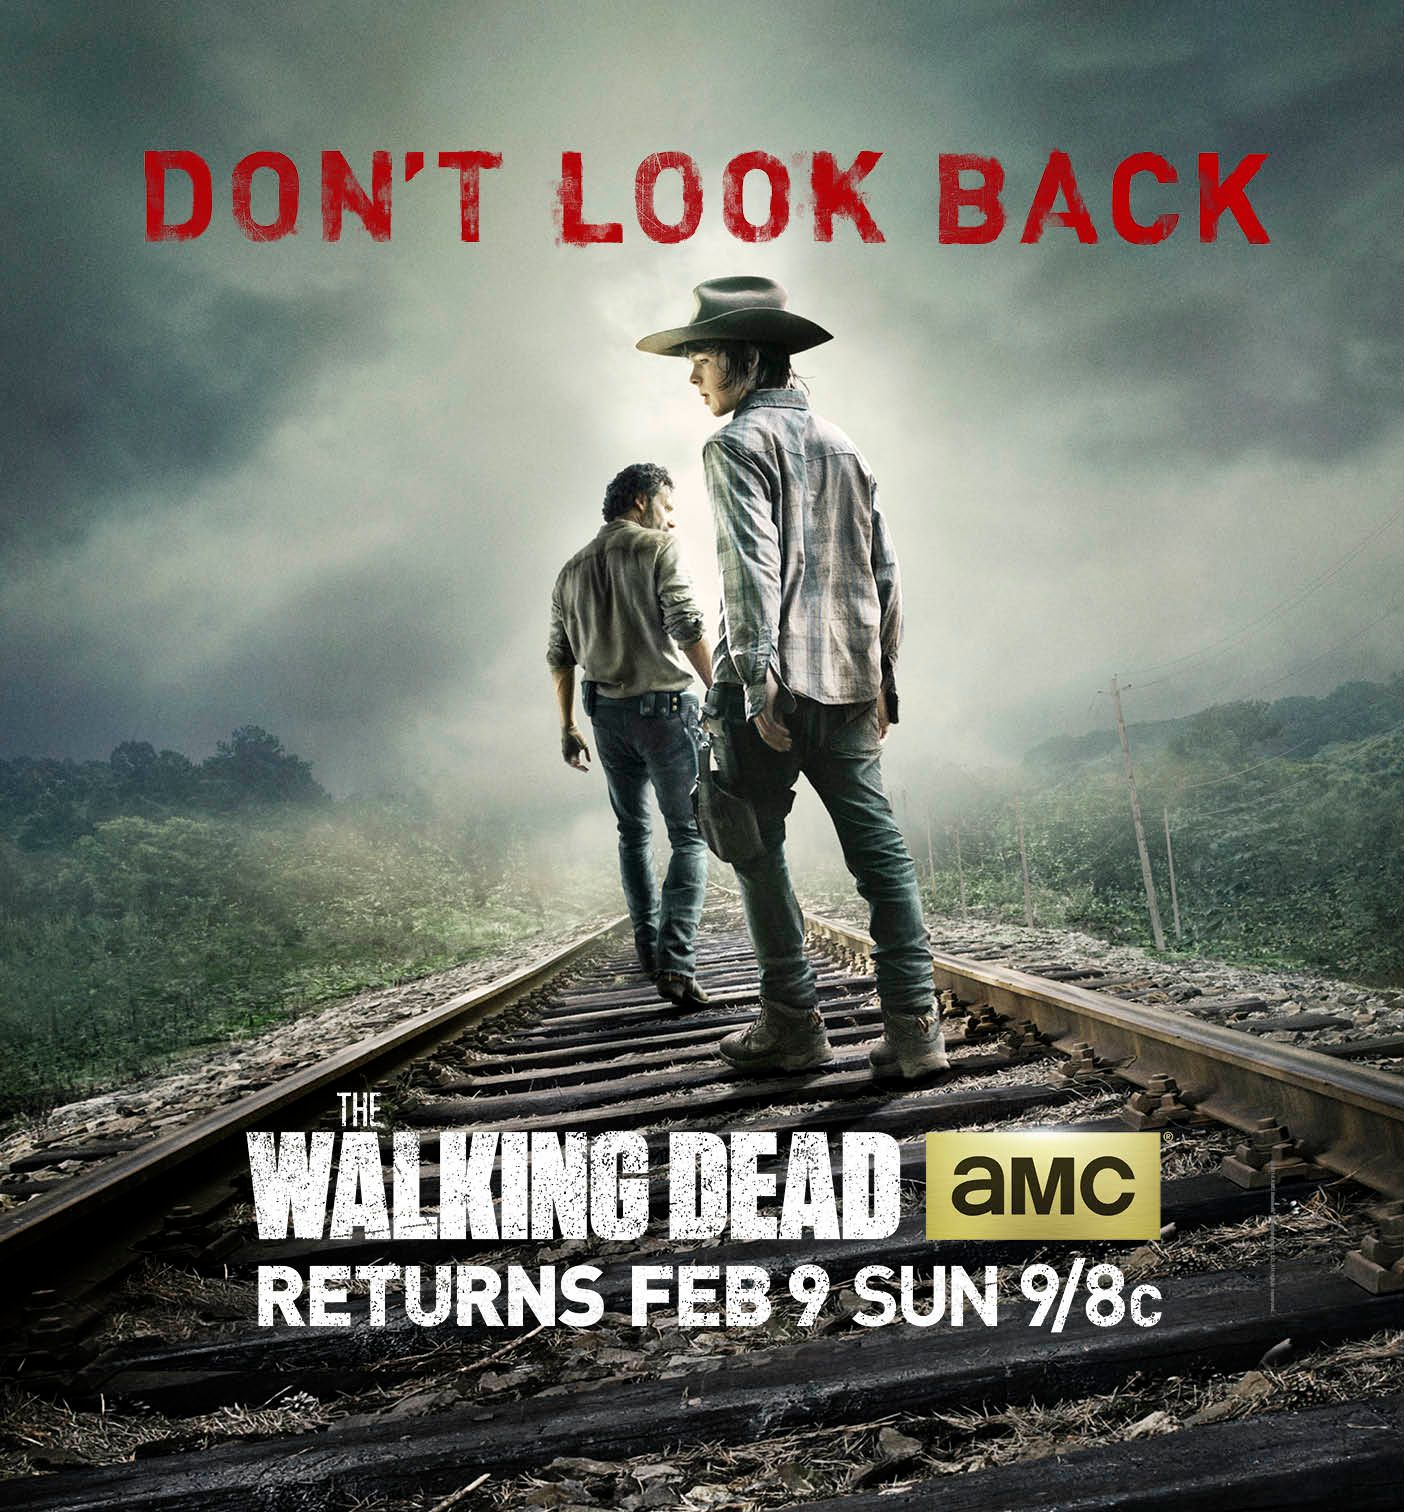 the walking dead season 4 poster featuring andrew lincoln